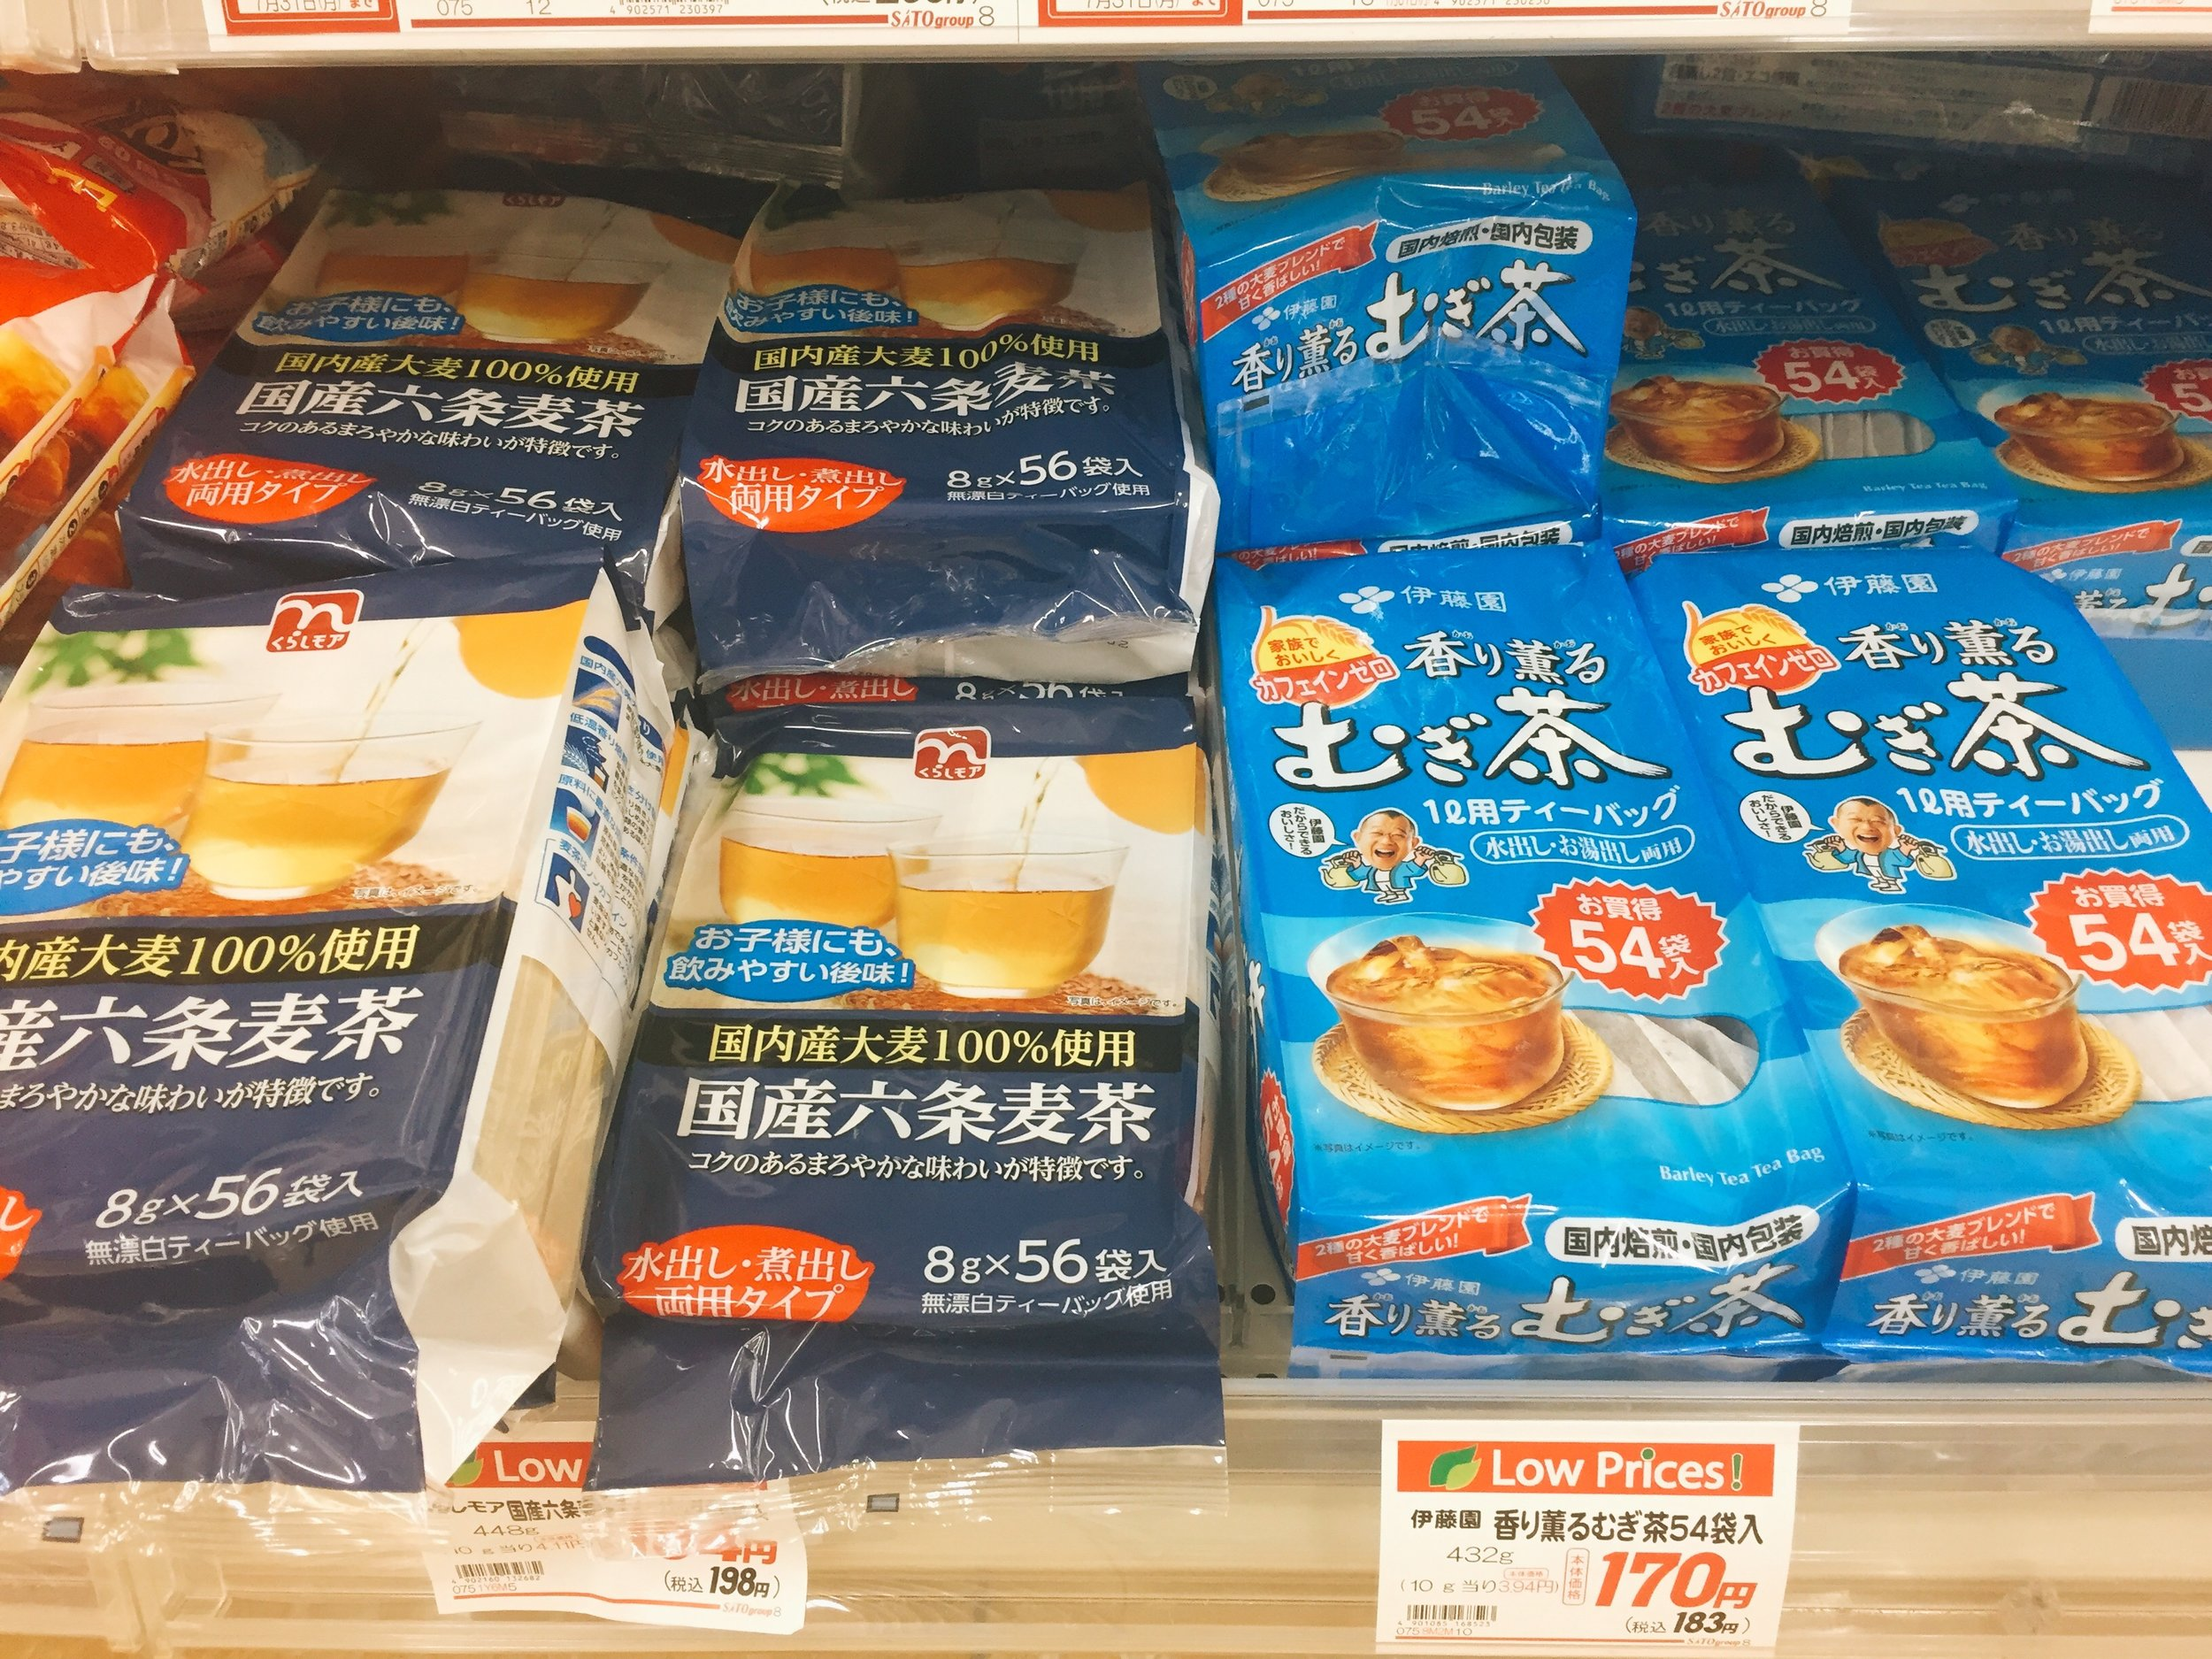 Both of these brands have upwards of 50 tea bags that steep in one liter of water for less than 200 yen.